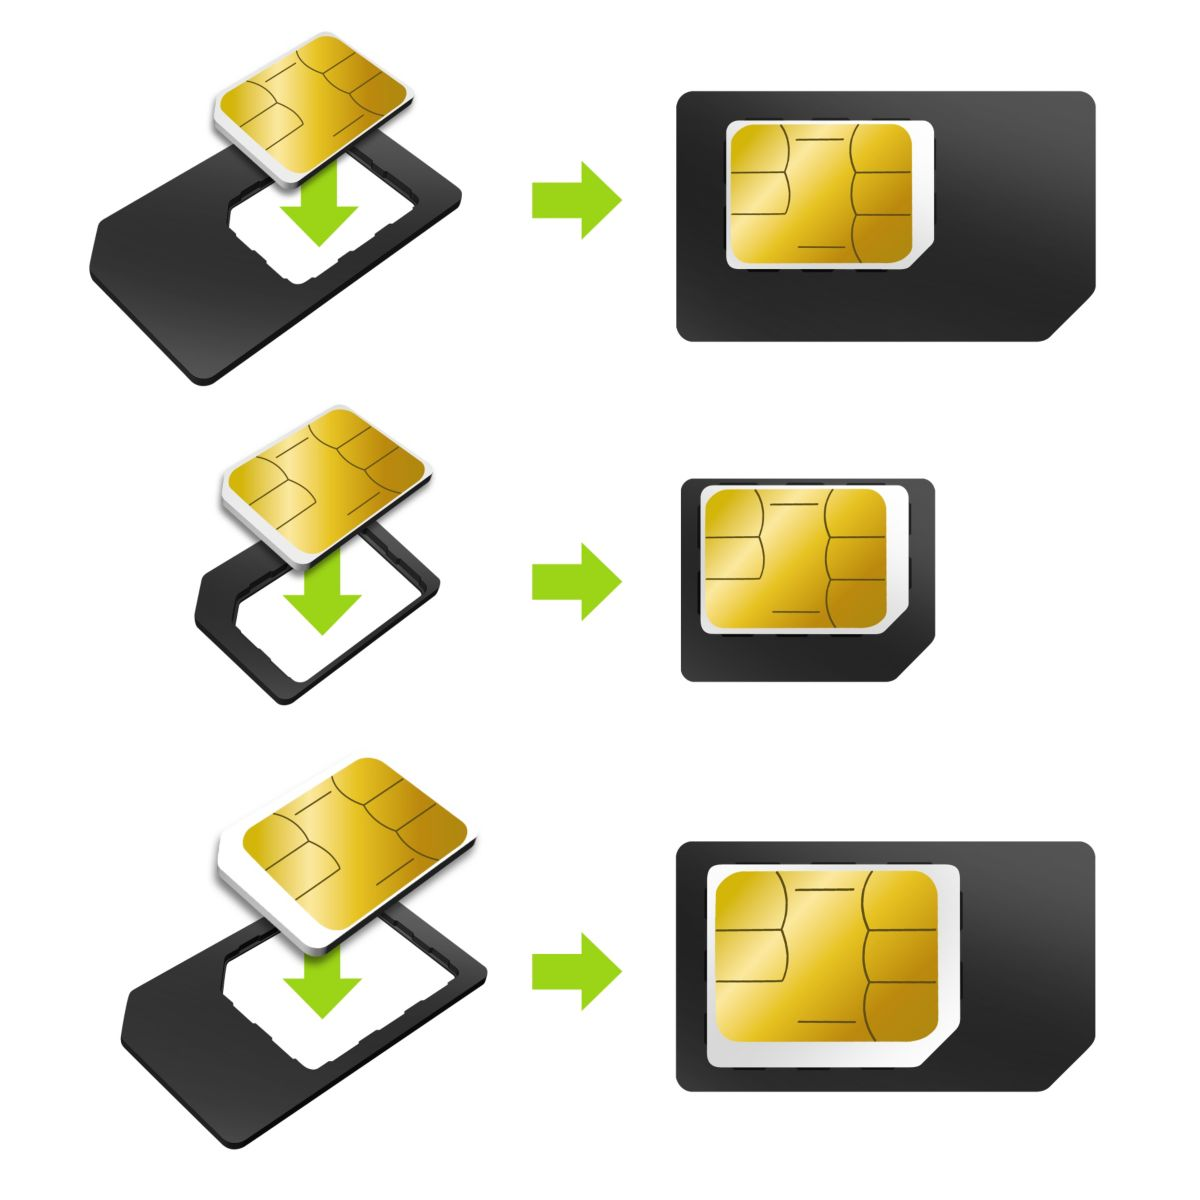 Adaptateur carte SIM ESSENTIELB pack de 3 cartes sim-nano sim- micro sim (photo)